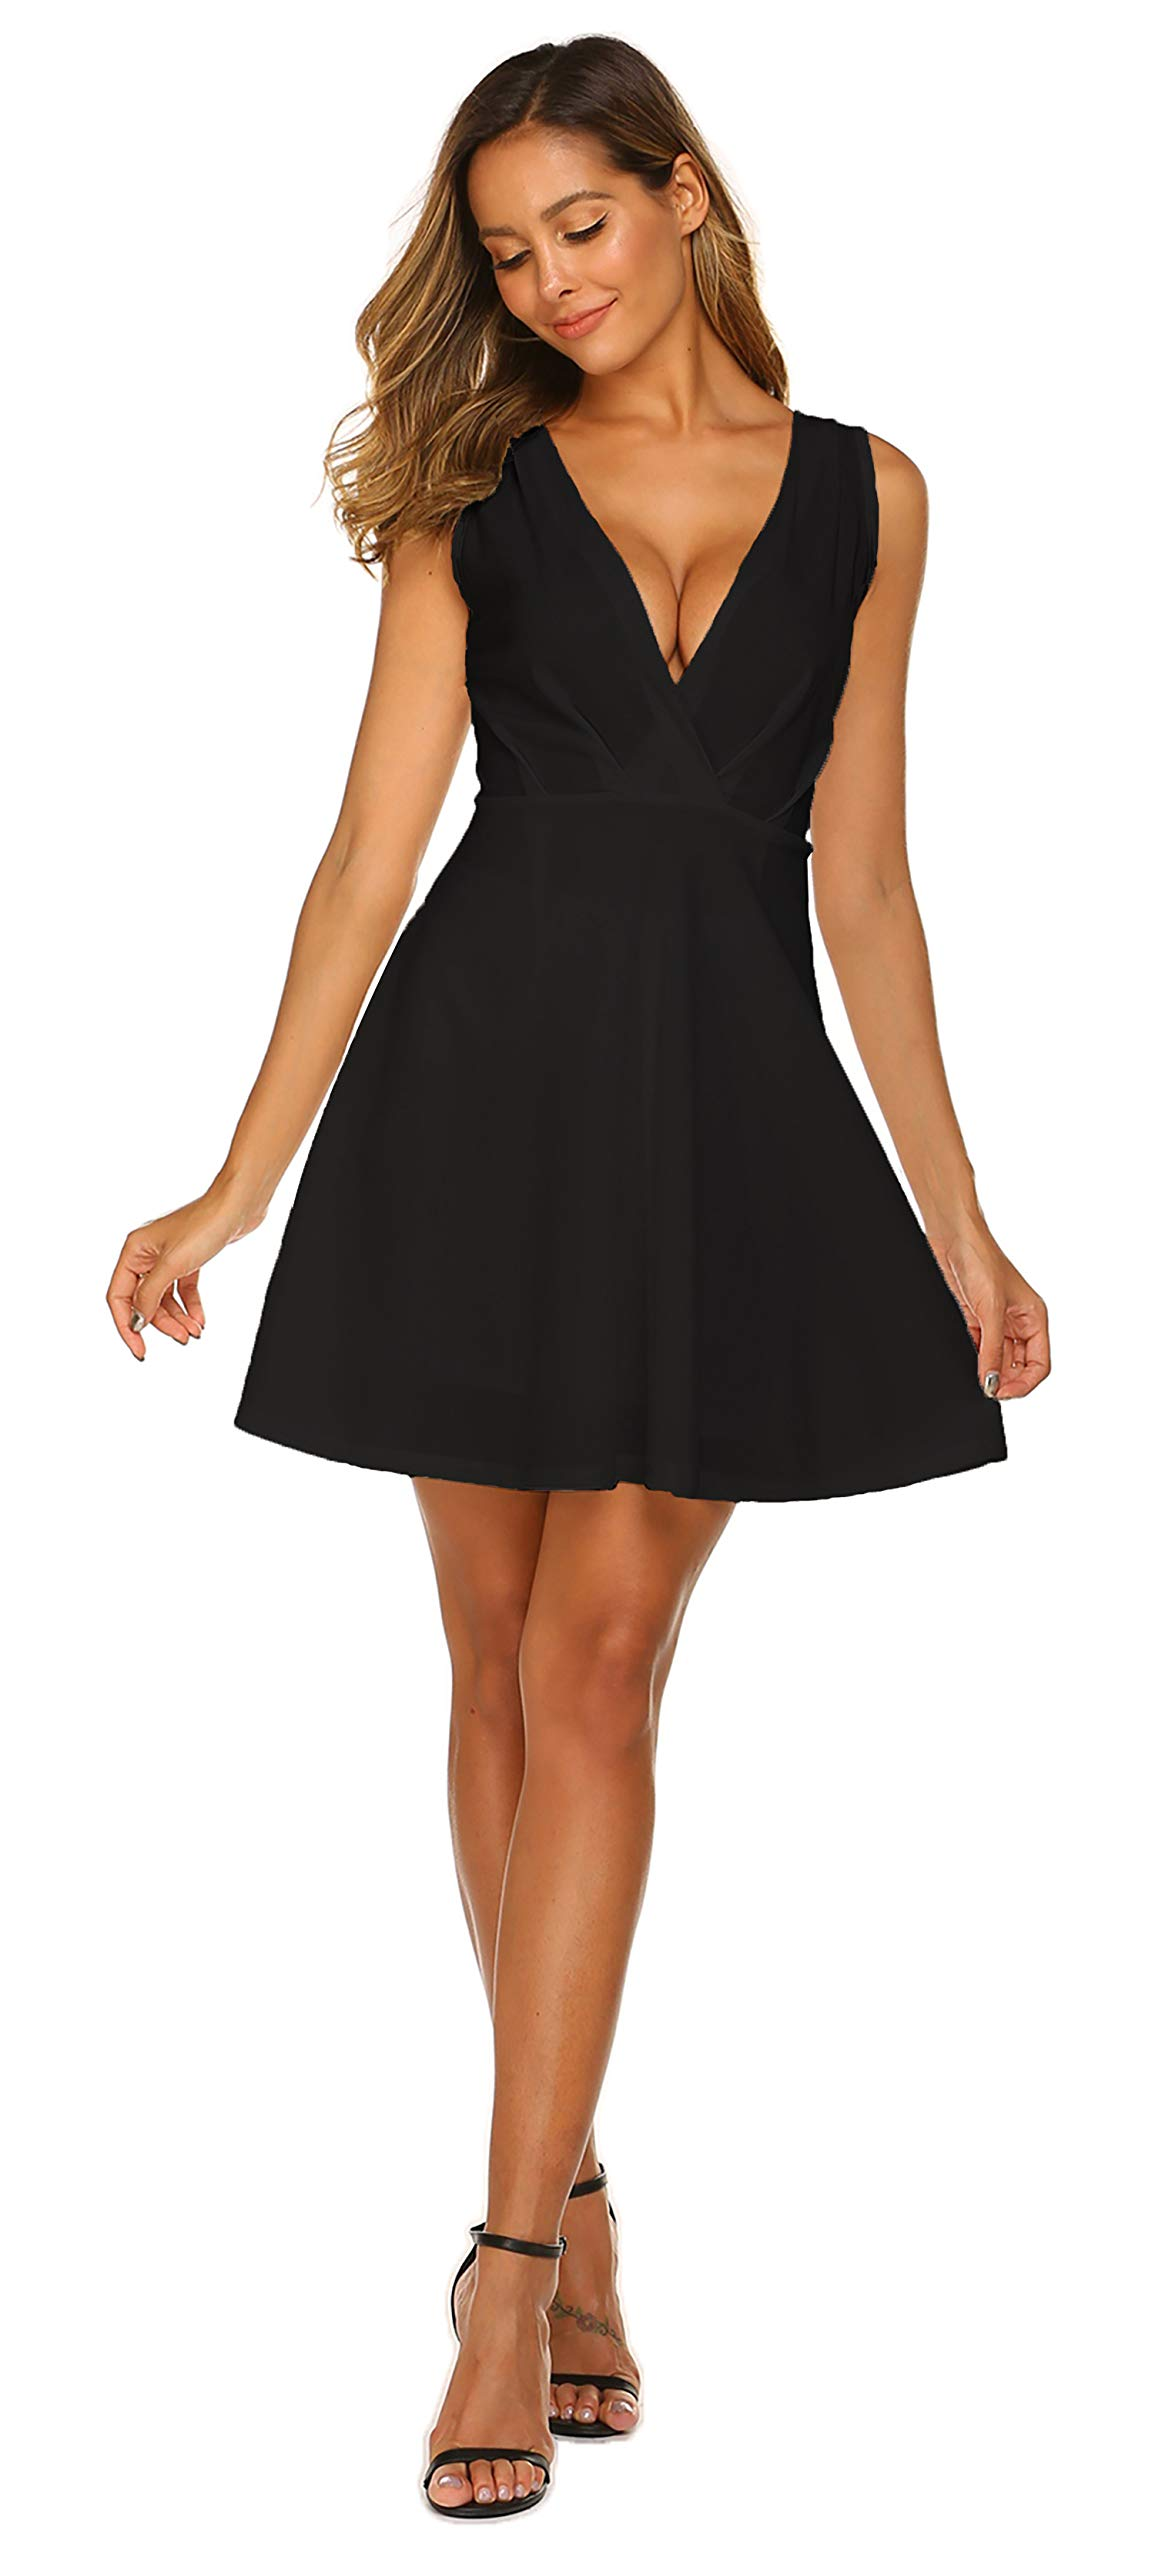 OURS Women's Sexy V Neck Swing A-line Dress Homecoming Cocktail Party Skater Dress